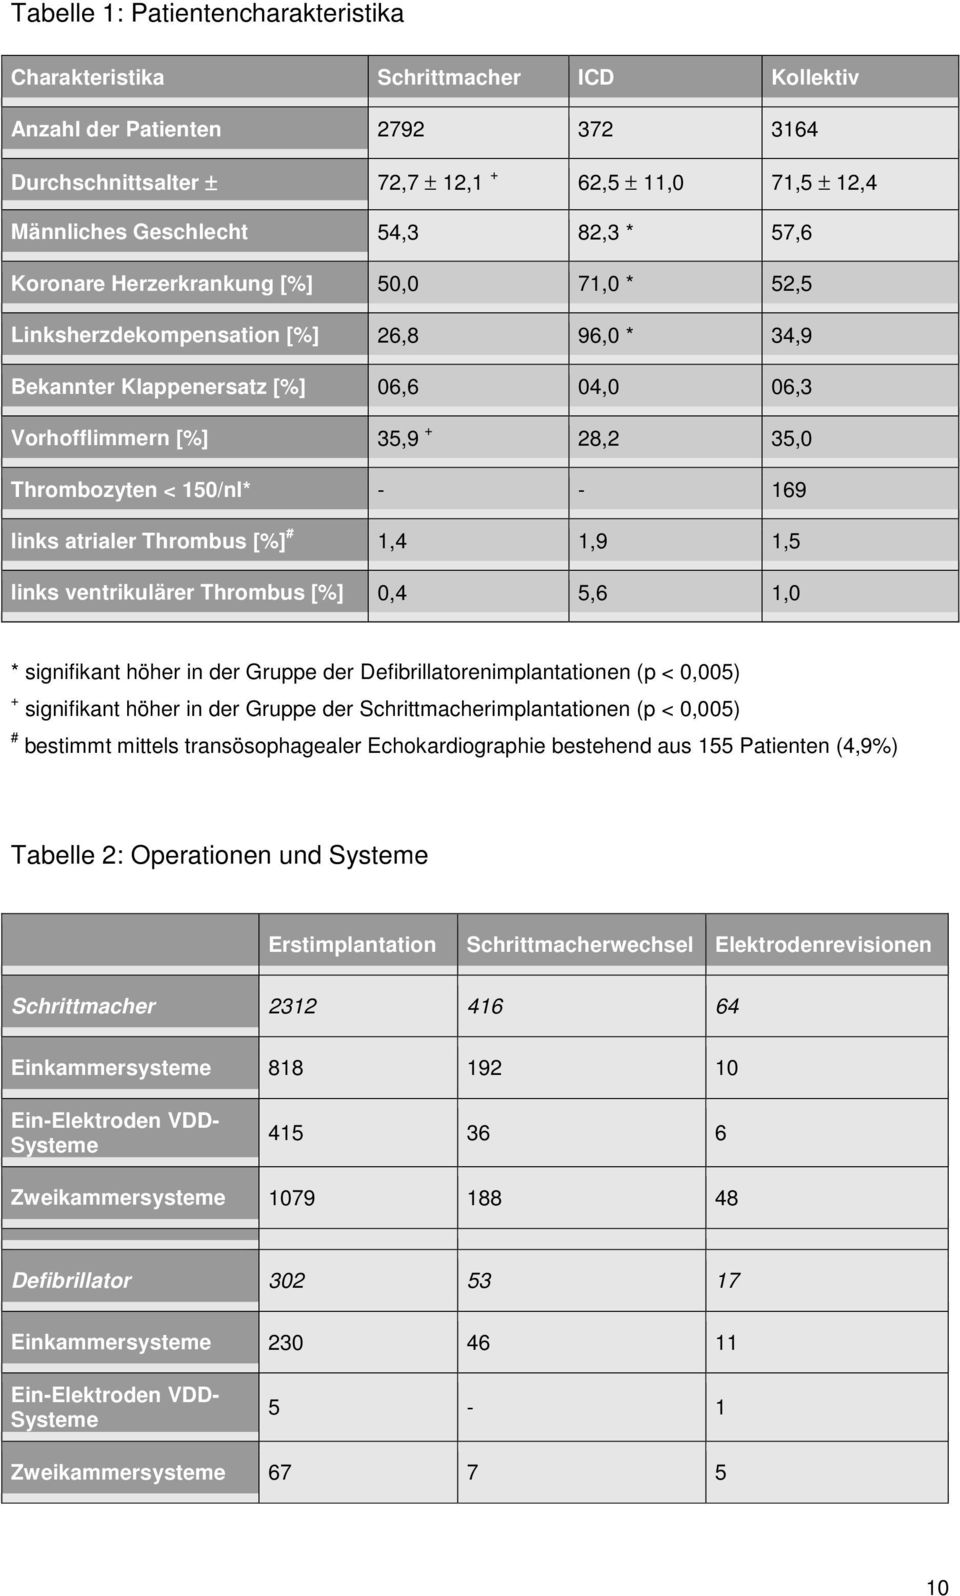 < 150/nl* - - 169 links atrialer Thrombus [%] # 1,4 1,9 1,5 links ventrikulärer Thrombus [%] 0,4 5,6 1,0 * signifikant höher in der Gruppe der Defibrillatorenimplantationen (p < 0,005) + signifikant